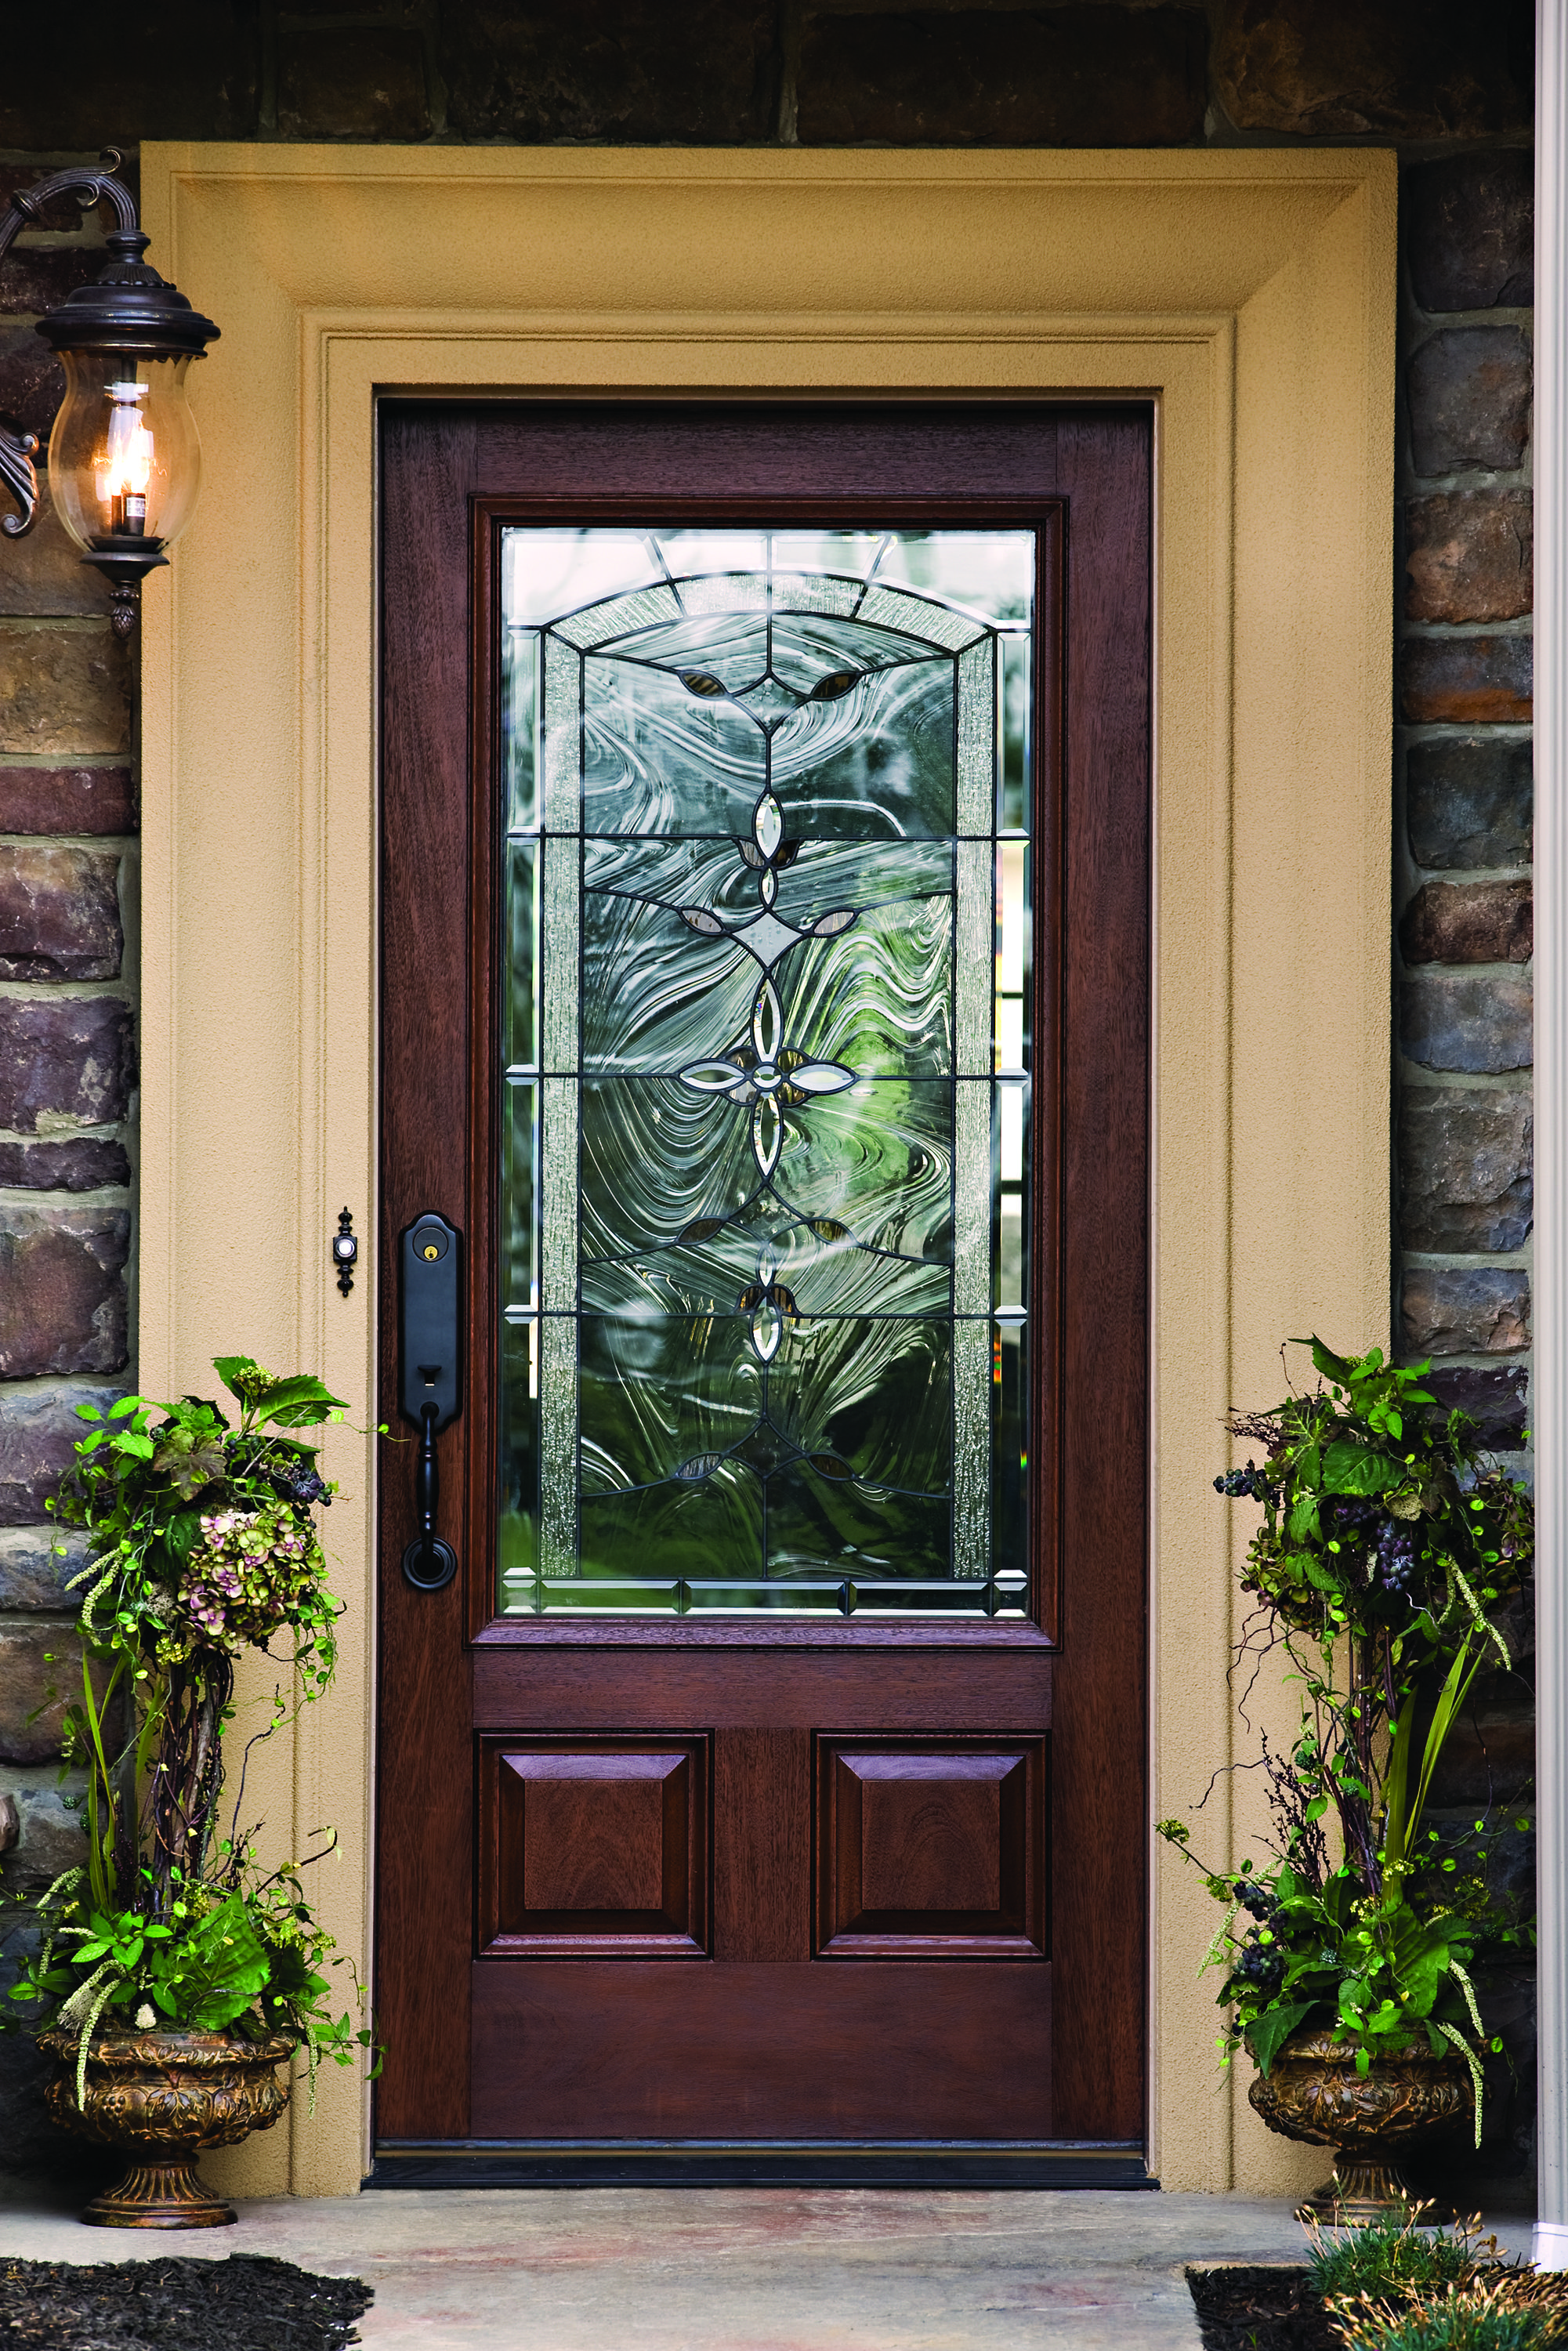 find hardware baldwin our therma contact service professional out supply exterior door entry of builders doors today millwork tru installation anchorage reserve to